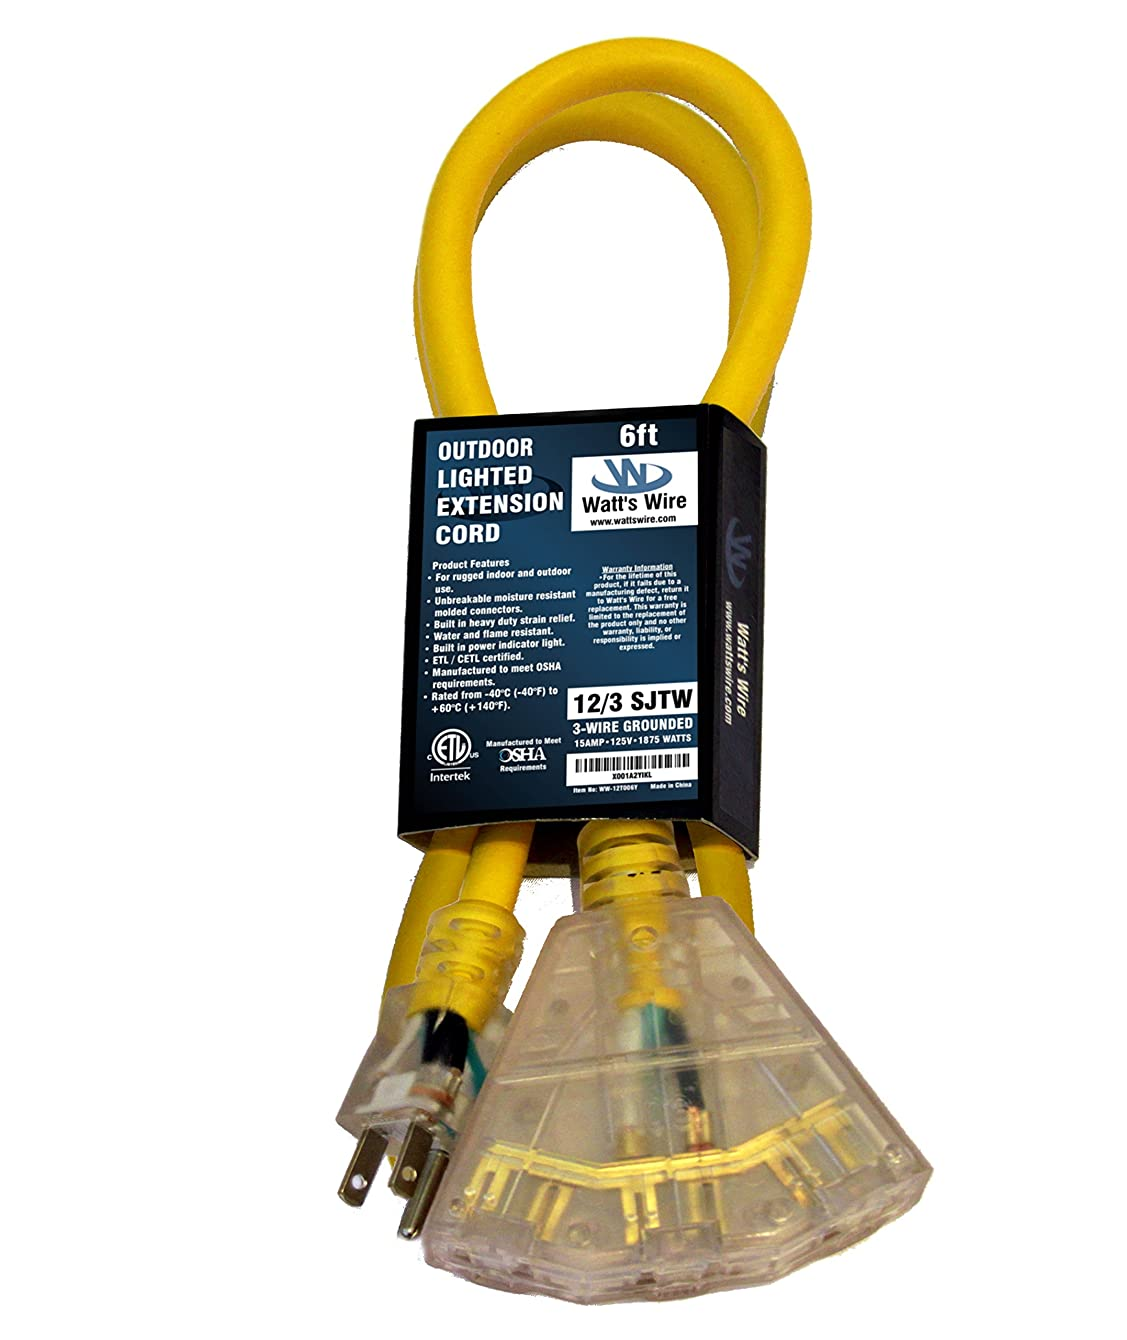 6-ft 12/3 Heavy Duty 3-Outlet Lighted SJTW Indoor/Outdoor Extension Cord by Watt's Wire - Short Yellow 6' 12-Gauge Grounded 15-Amp Three-Prong Power-Cord (6 foot 12-Awg) jzvdmfwkmutsy40